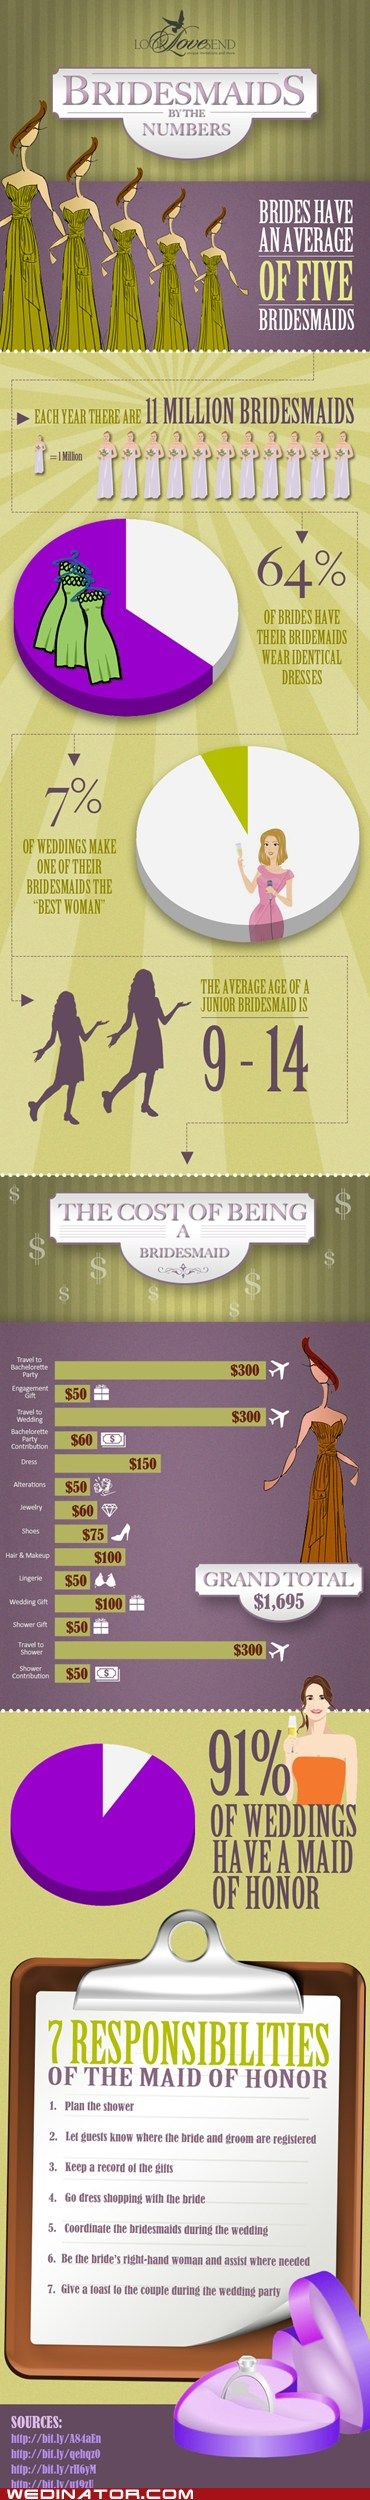 Bridesmaids By The Numbers. This is why I'm gonna try to combine trips for my maids (shower and bacheloret party the same weekend)